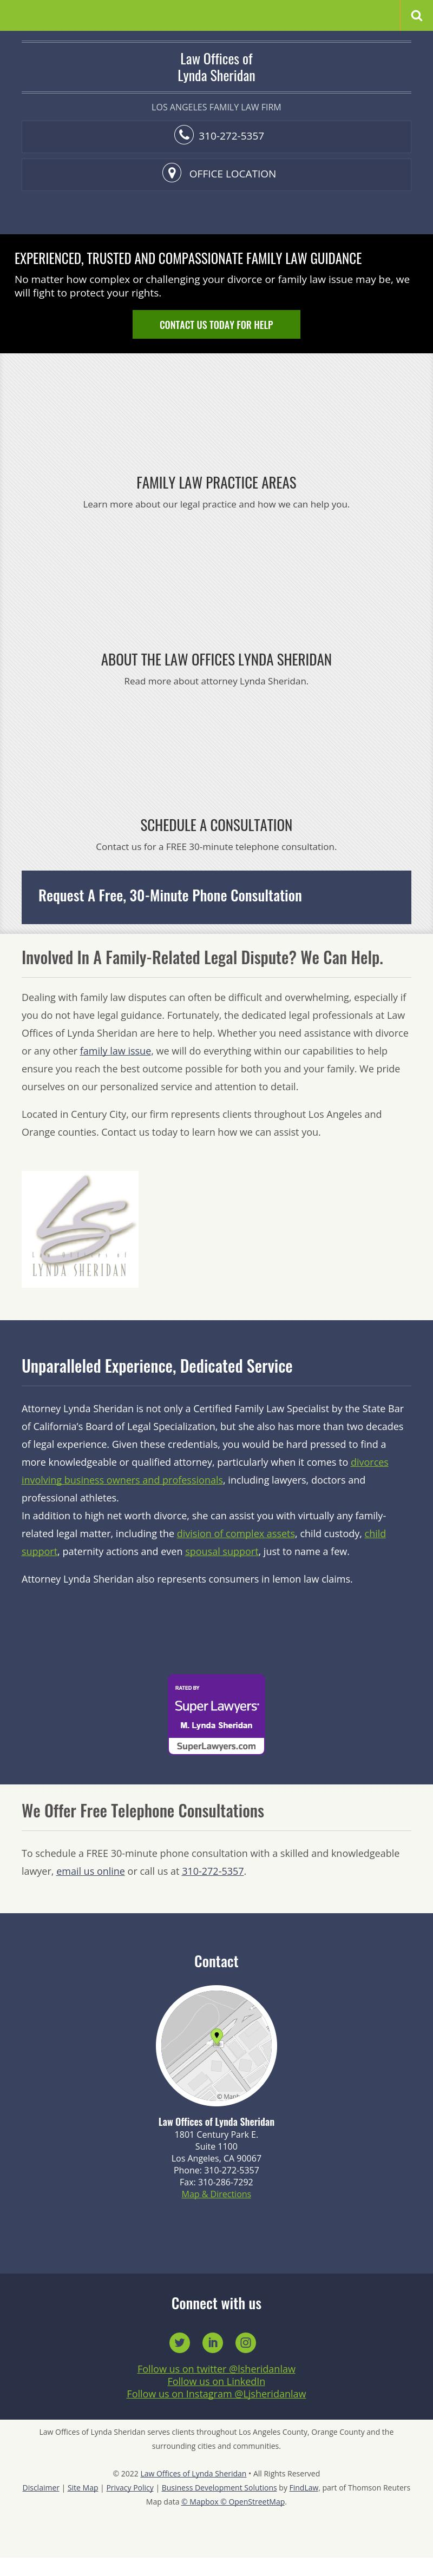 Law Offices of Lynda Sheridan - Los Angeles CA Lawyers